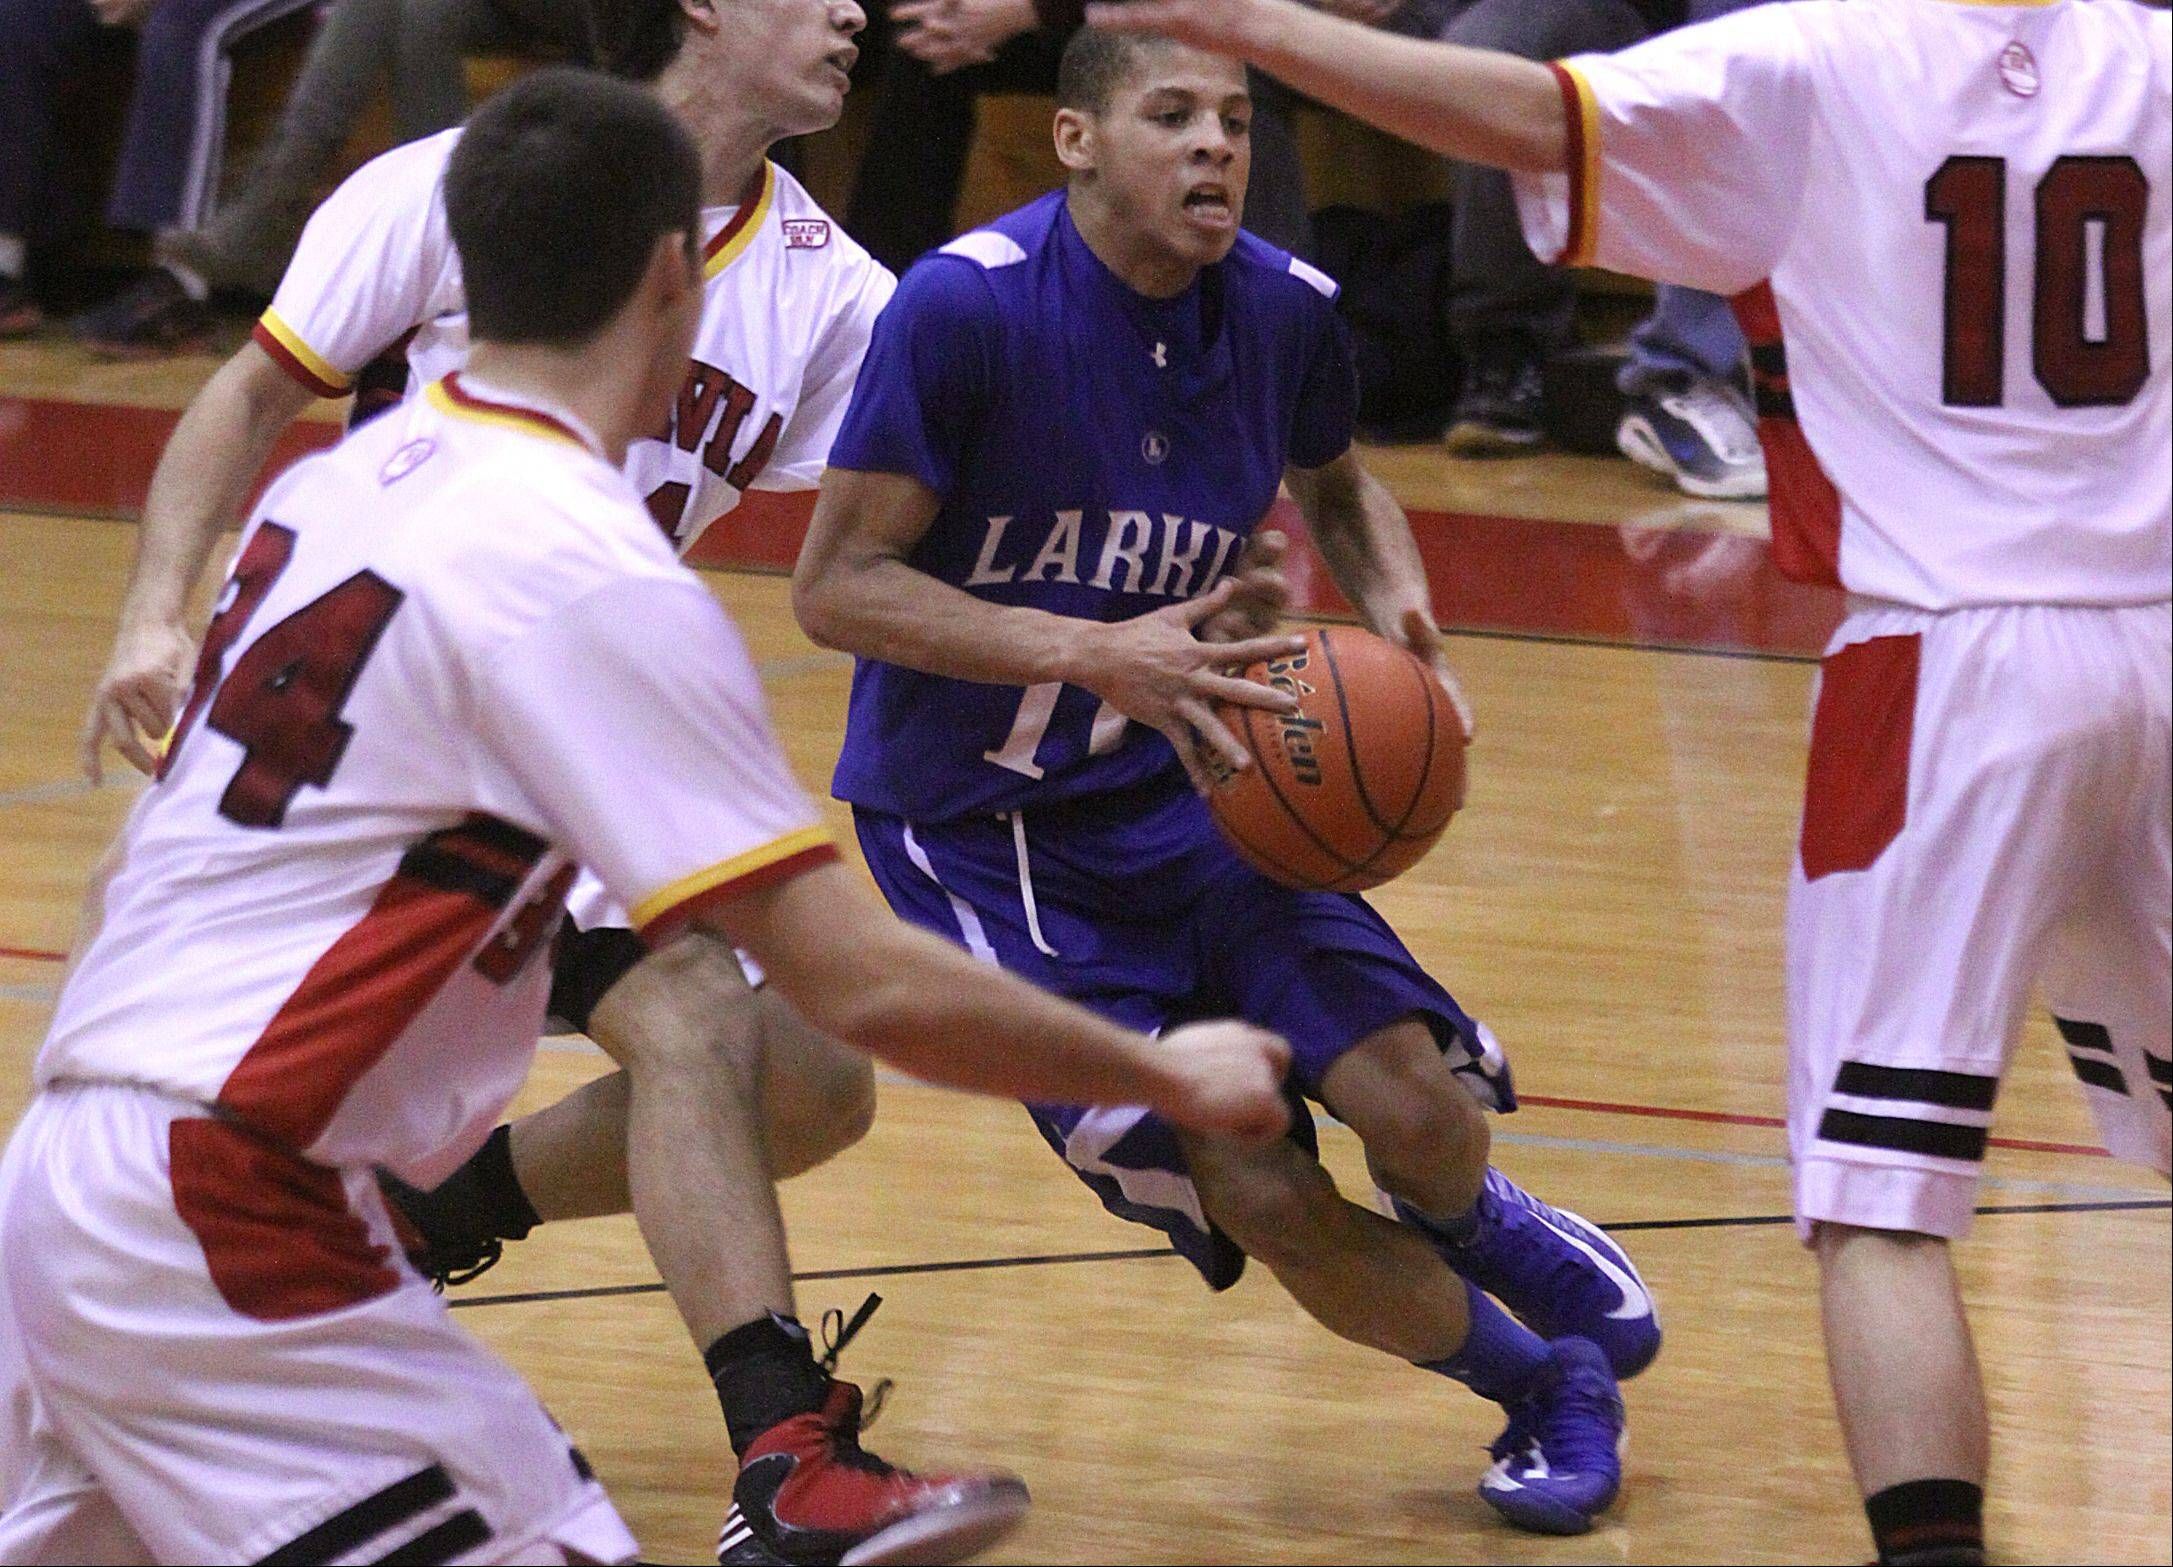 Larkin's Kendale McCullum moves the ball during a varsity basketball game at Batavia on Thursday night.